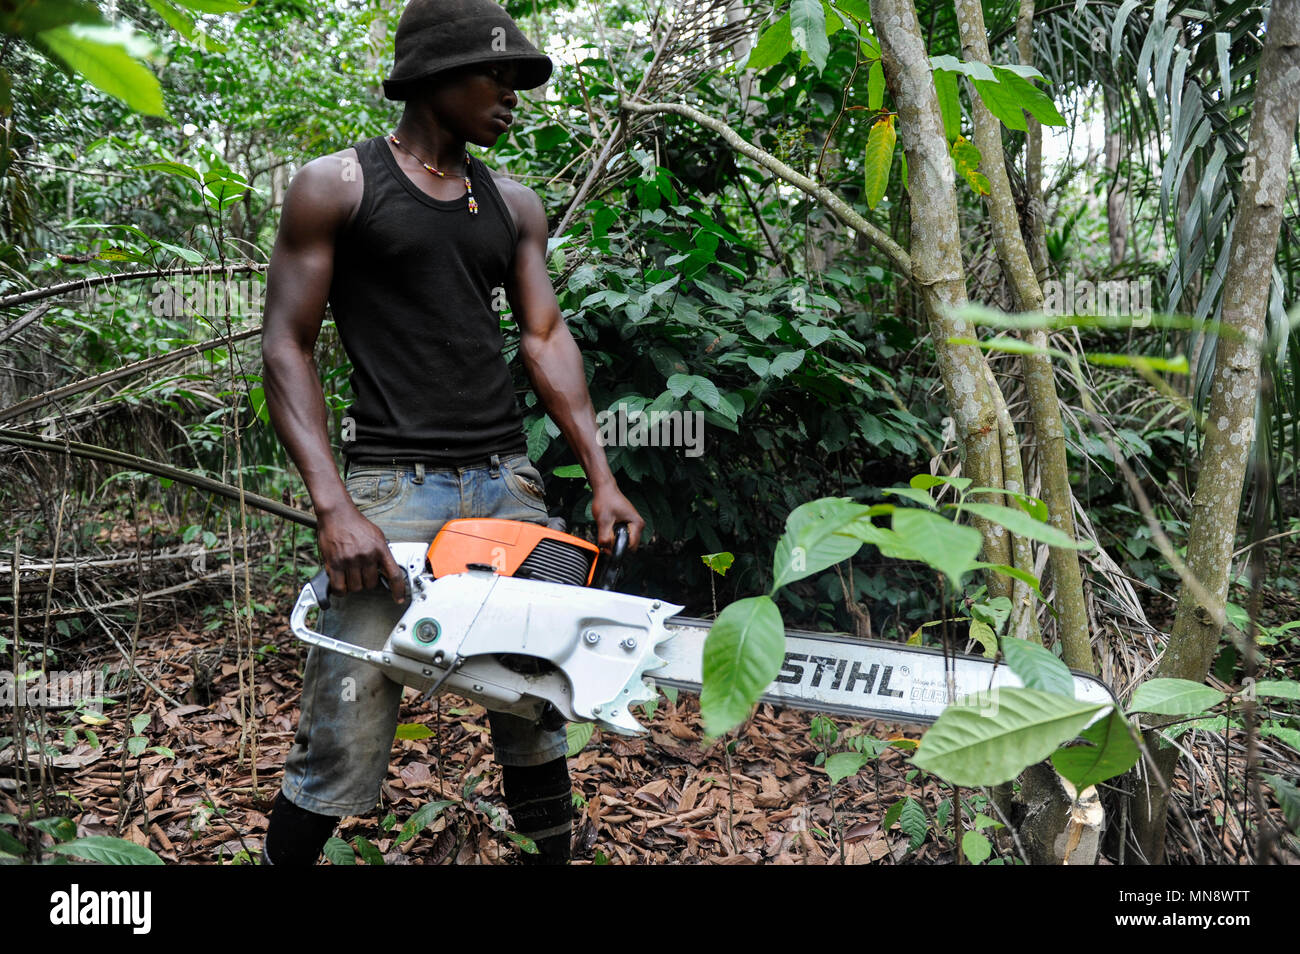 ANGOLA Calulo, old german coffee plantation, deforstation, worker with german made Stihl chain saw between coffee shrubs - Stock Image